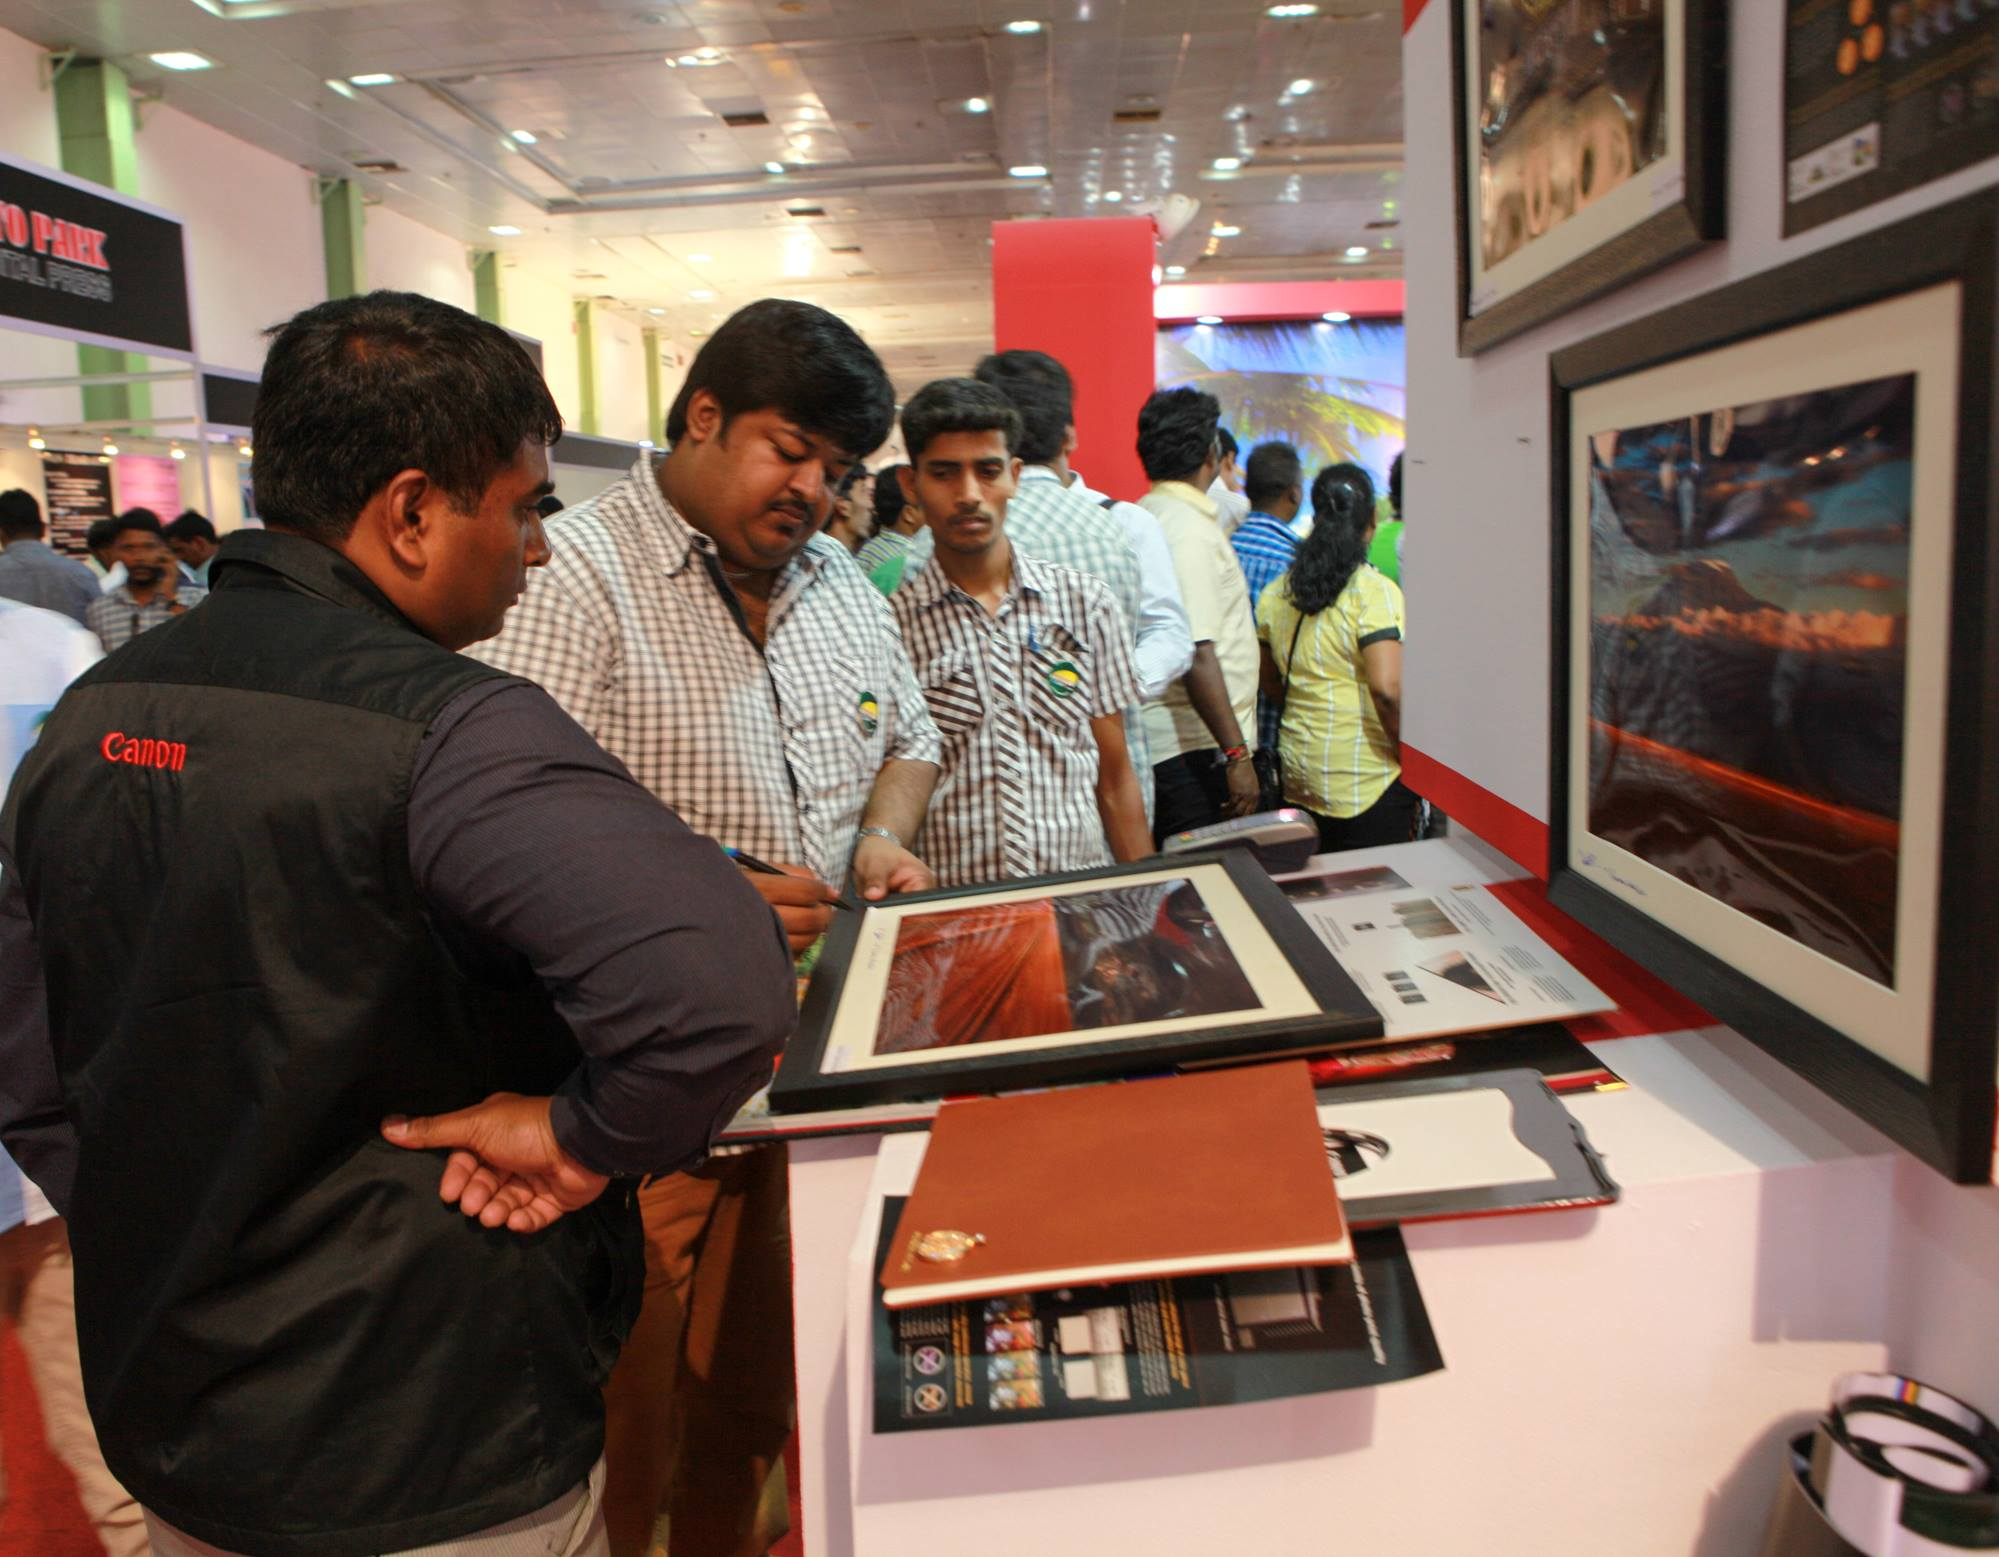 Signing-Special-Edition-Prints-For-the-Launch-of-Canon-Dream-Labo-500-in-Image-Expo-2014